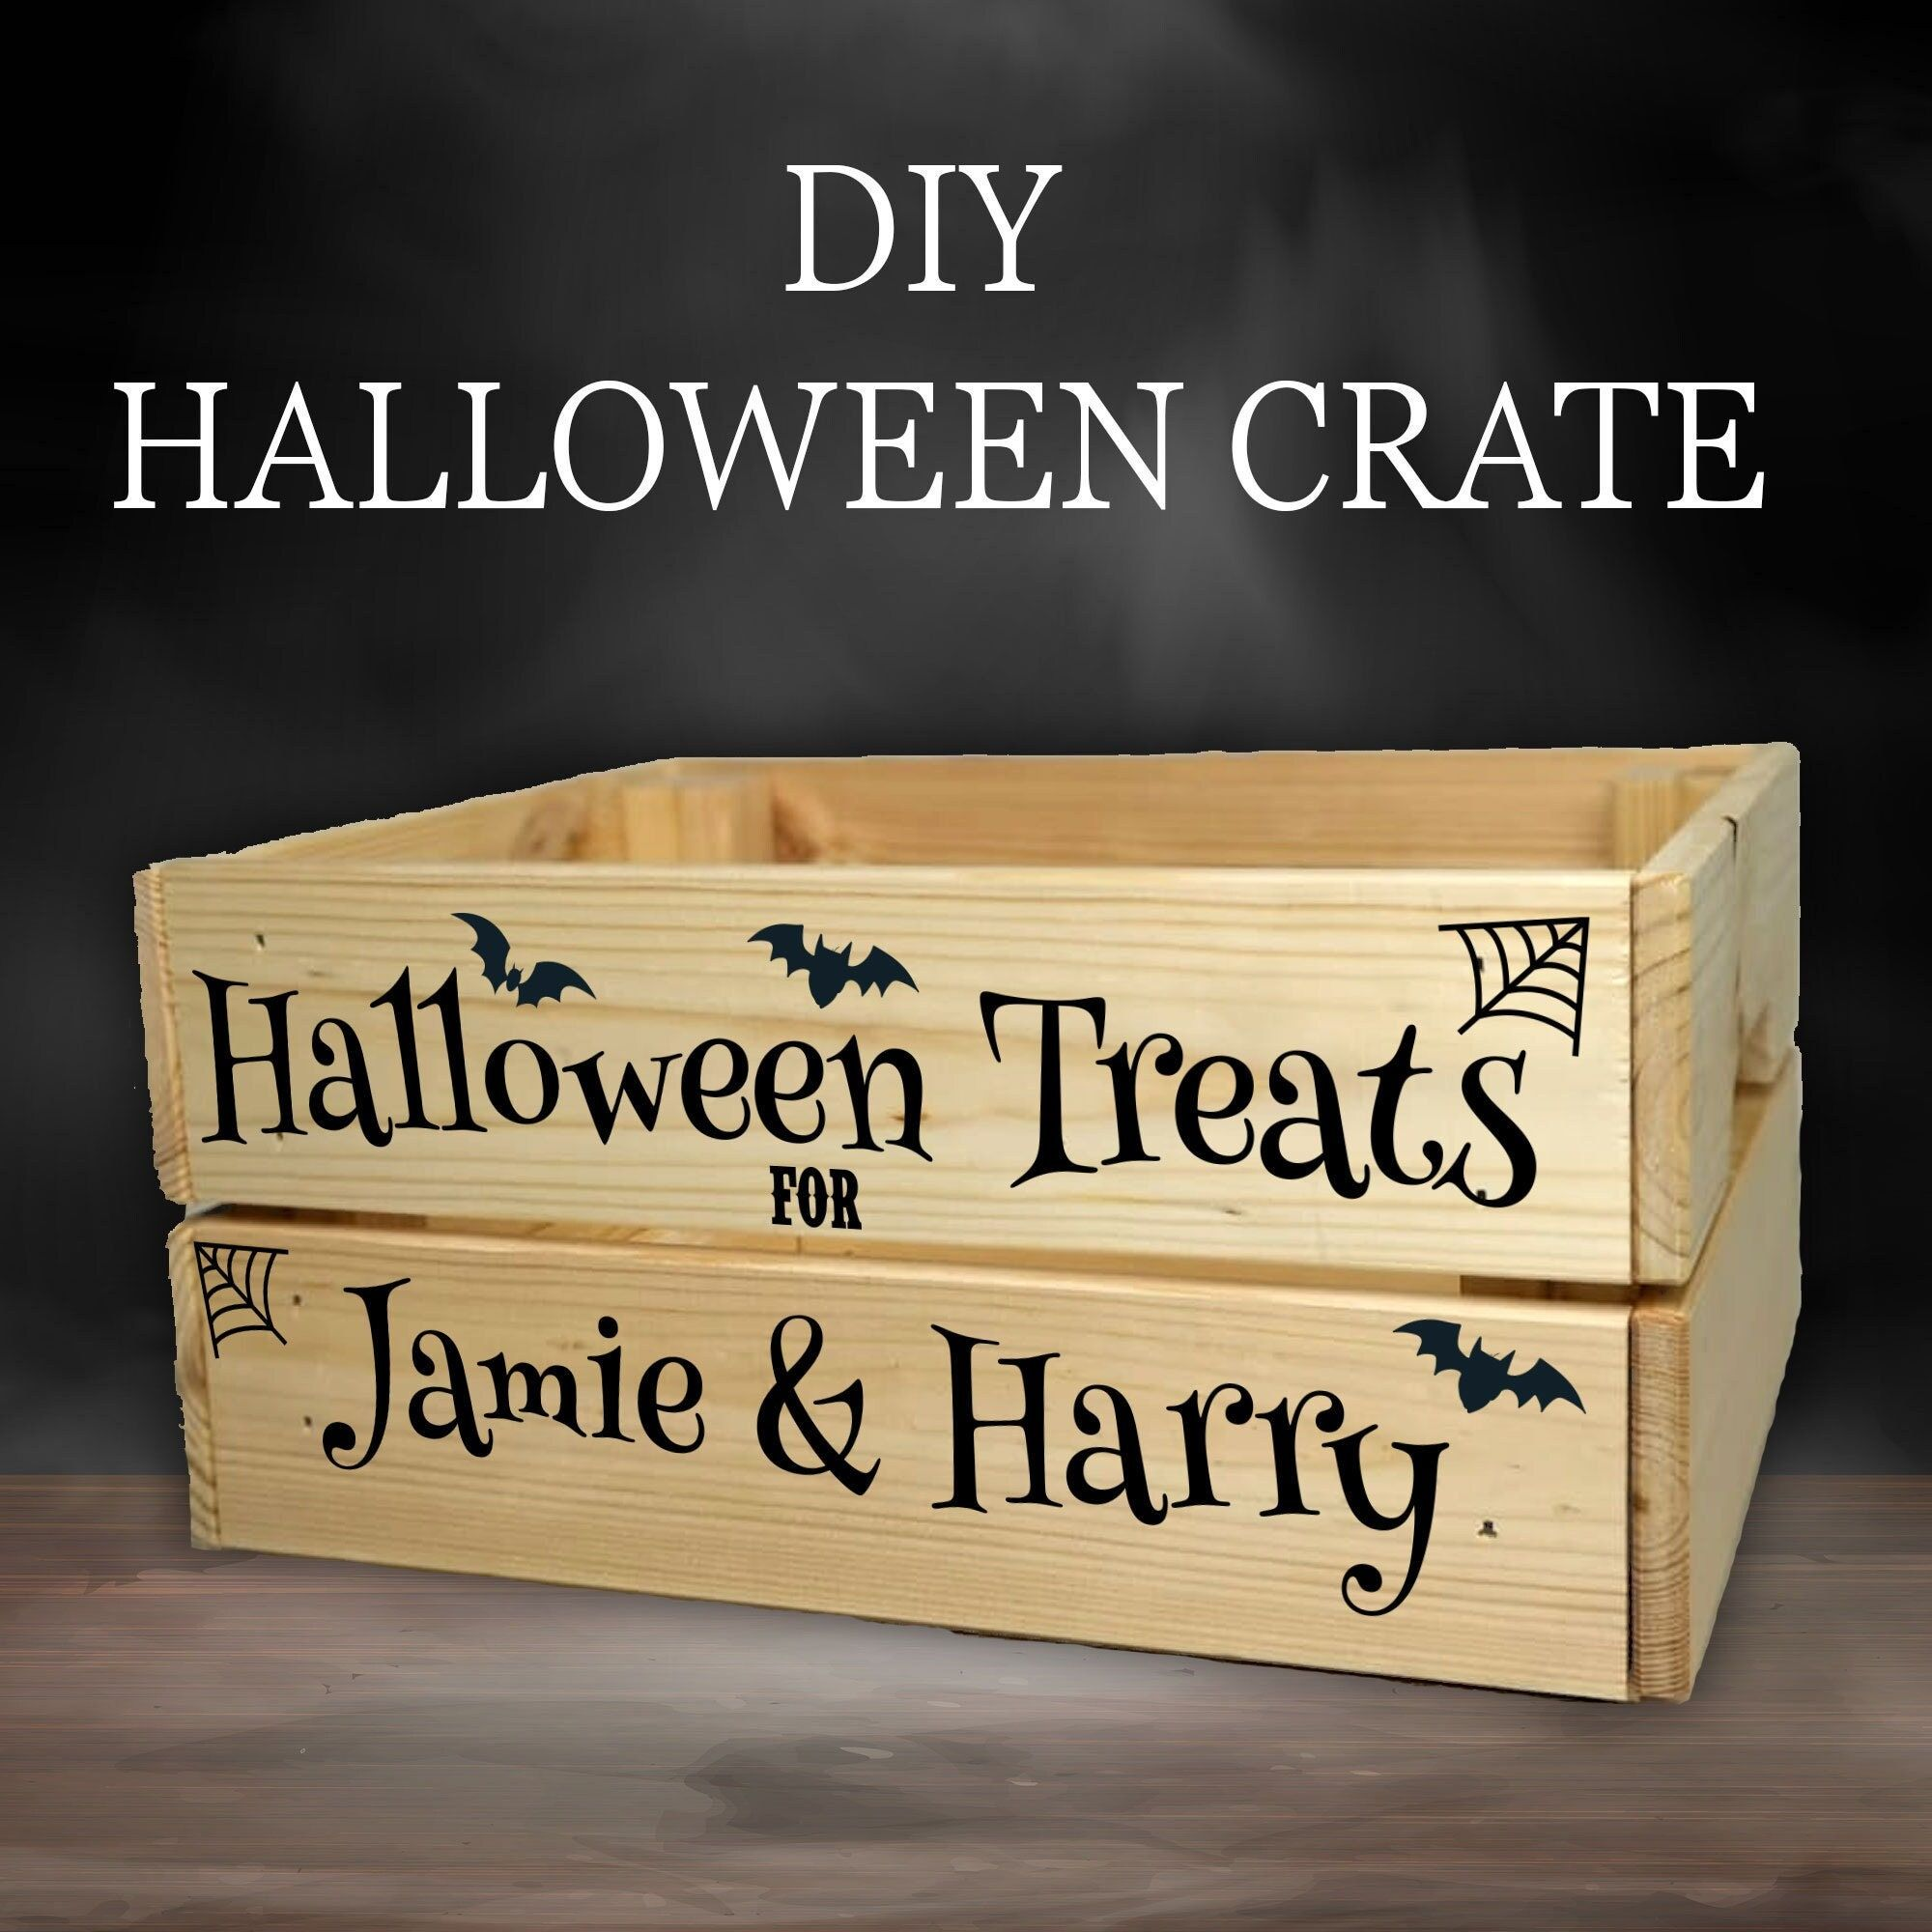 ♥️♥️ CREATE YOUR OWN HALLOWEEN TREATS CRATE ♥️♥️ Create your own Halloween Treats Crate, that will light up faces on Halloween, Create a box that is a great talking point. Adding your own custom vinyl onto an IKEA KNAGGLIG Small Box then maybe add ribbon to really make it stand out. Adding your own Spooky DVD's Sweet Treats you can create a really lovely new tradition for you and your family, We can fit upto 2 names per crate. NEW FOR 2021, See our second image and get a printed vinyl design ins